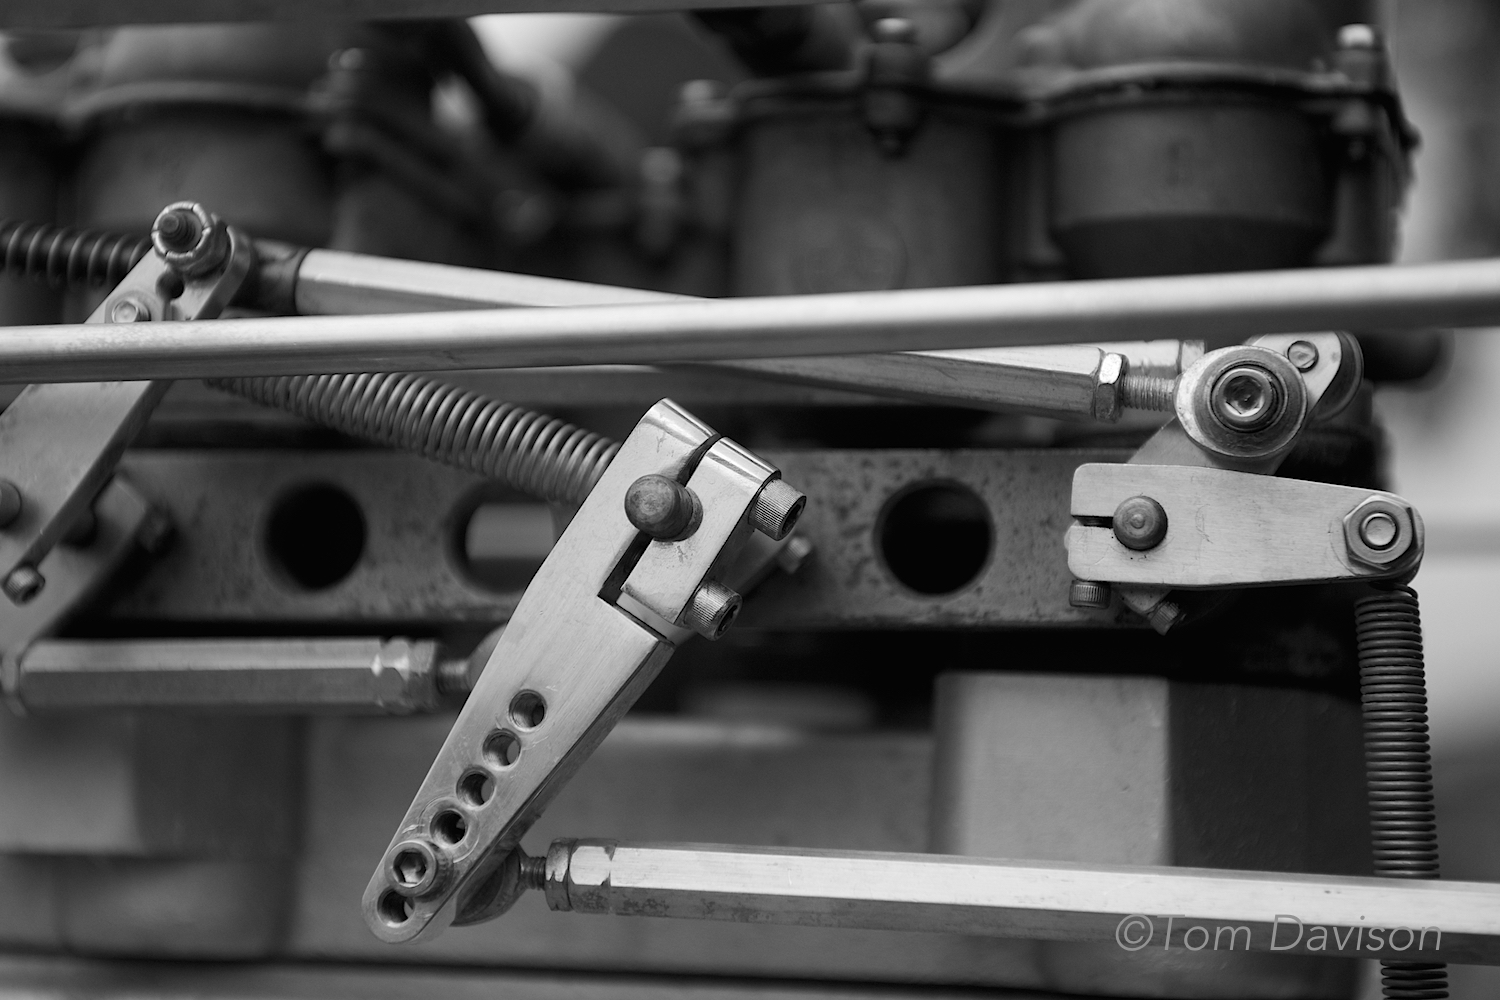 This is detail of a handmadethrottle linkage on a supercharged Oldsmobile engine.